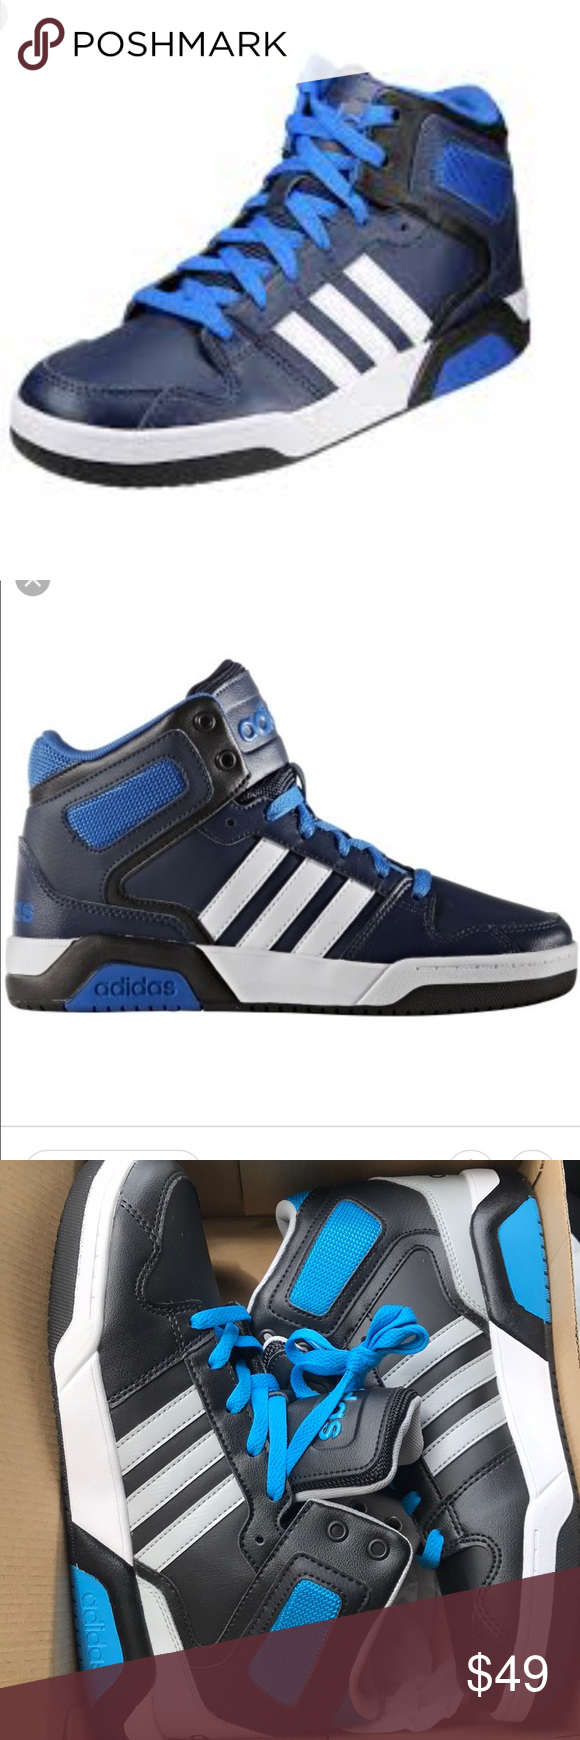 Adidas boys shoes size 7 New in box